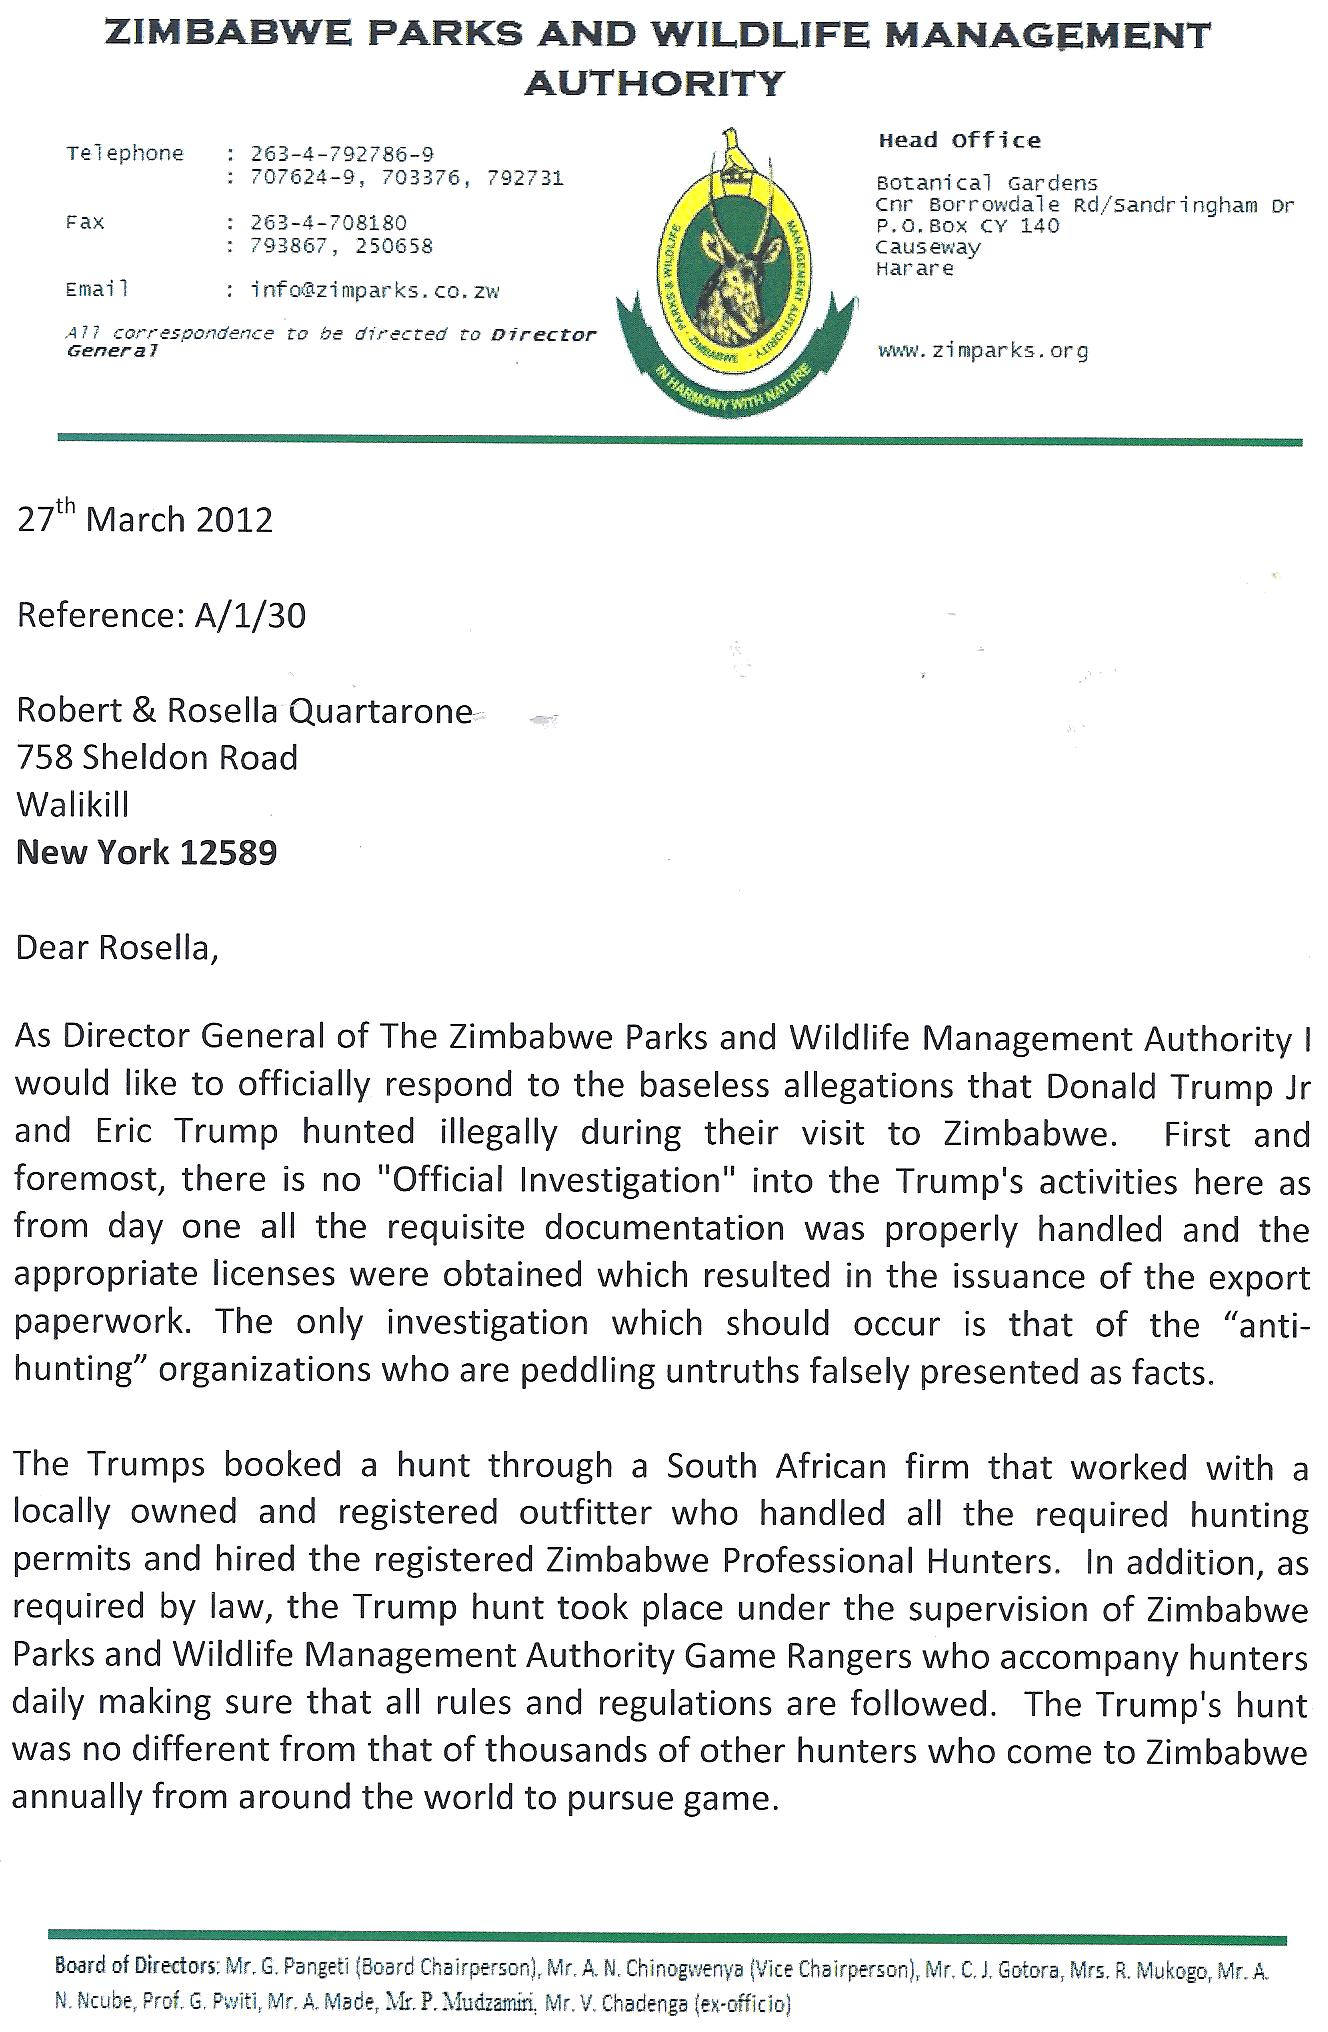 Exclusive Update: Zimbabwe Authorities Refute Allegations of Trumps' Illegal Hunt